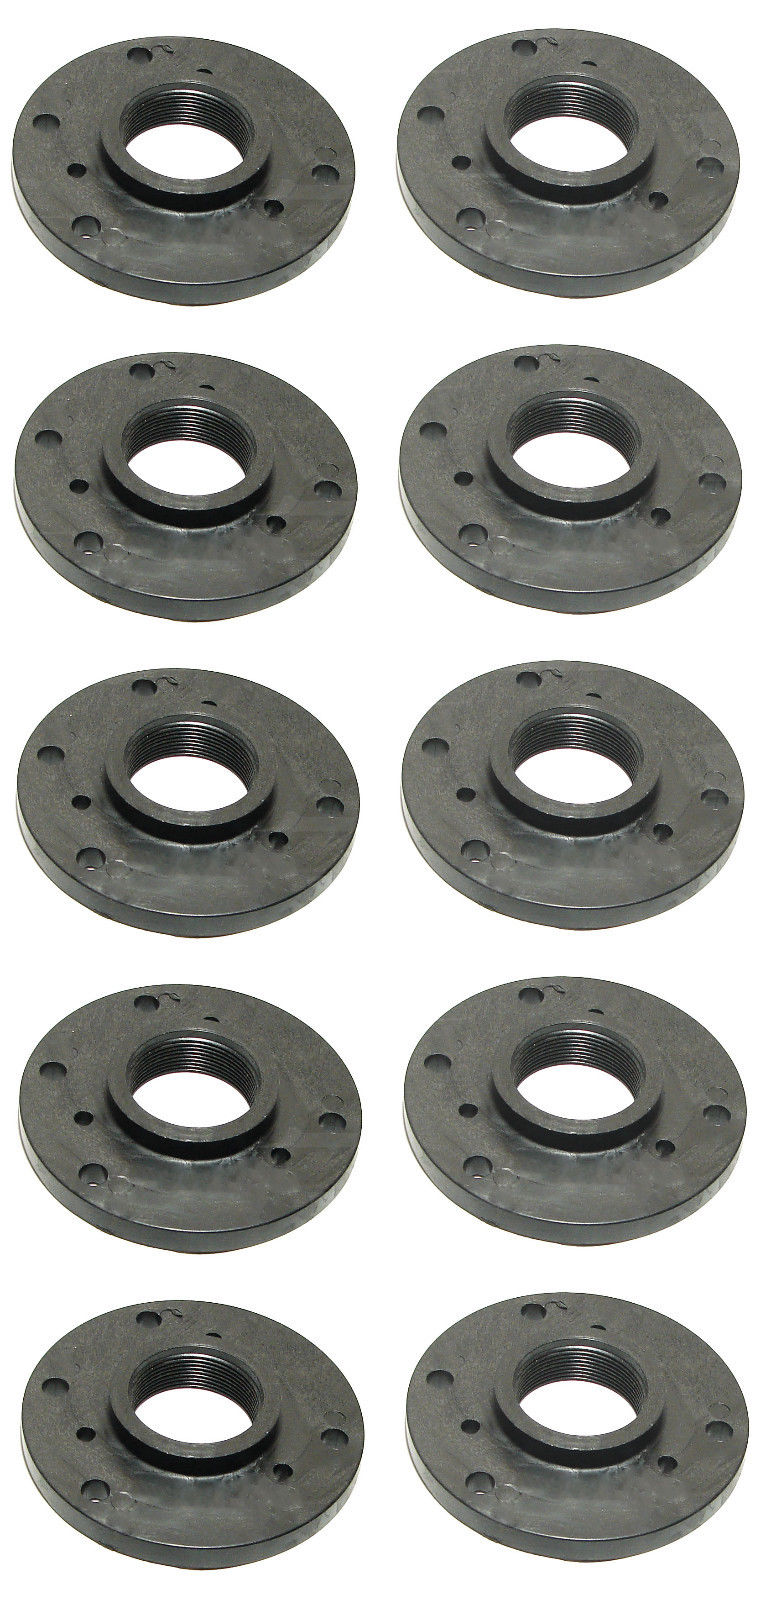 10 Pack Procraft LHW-3 Horn Adapter Female 1-3/8